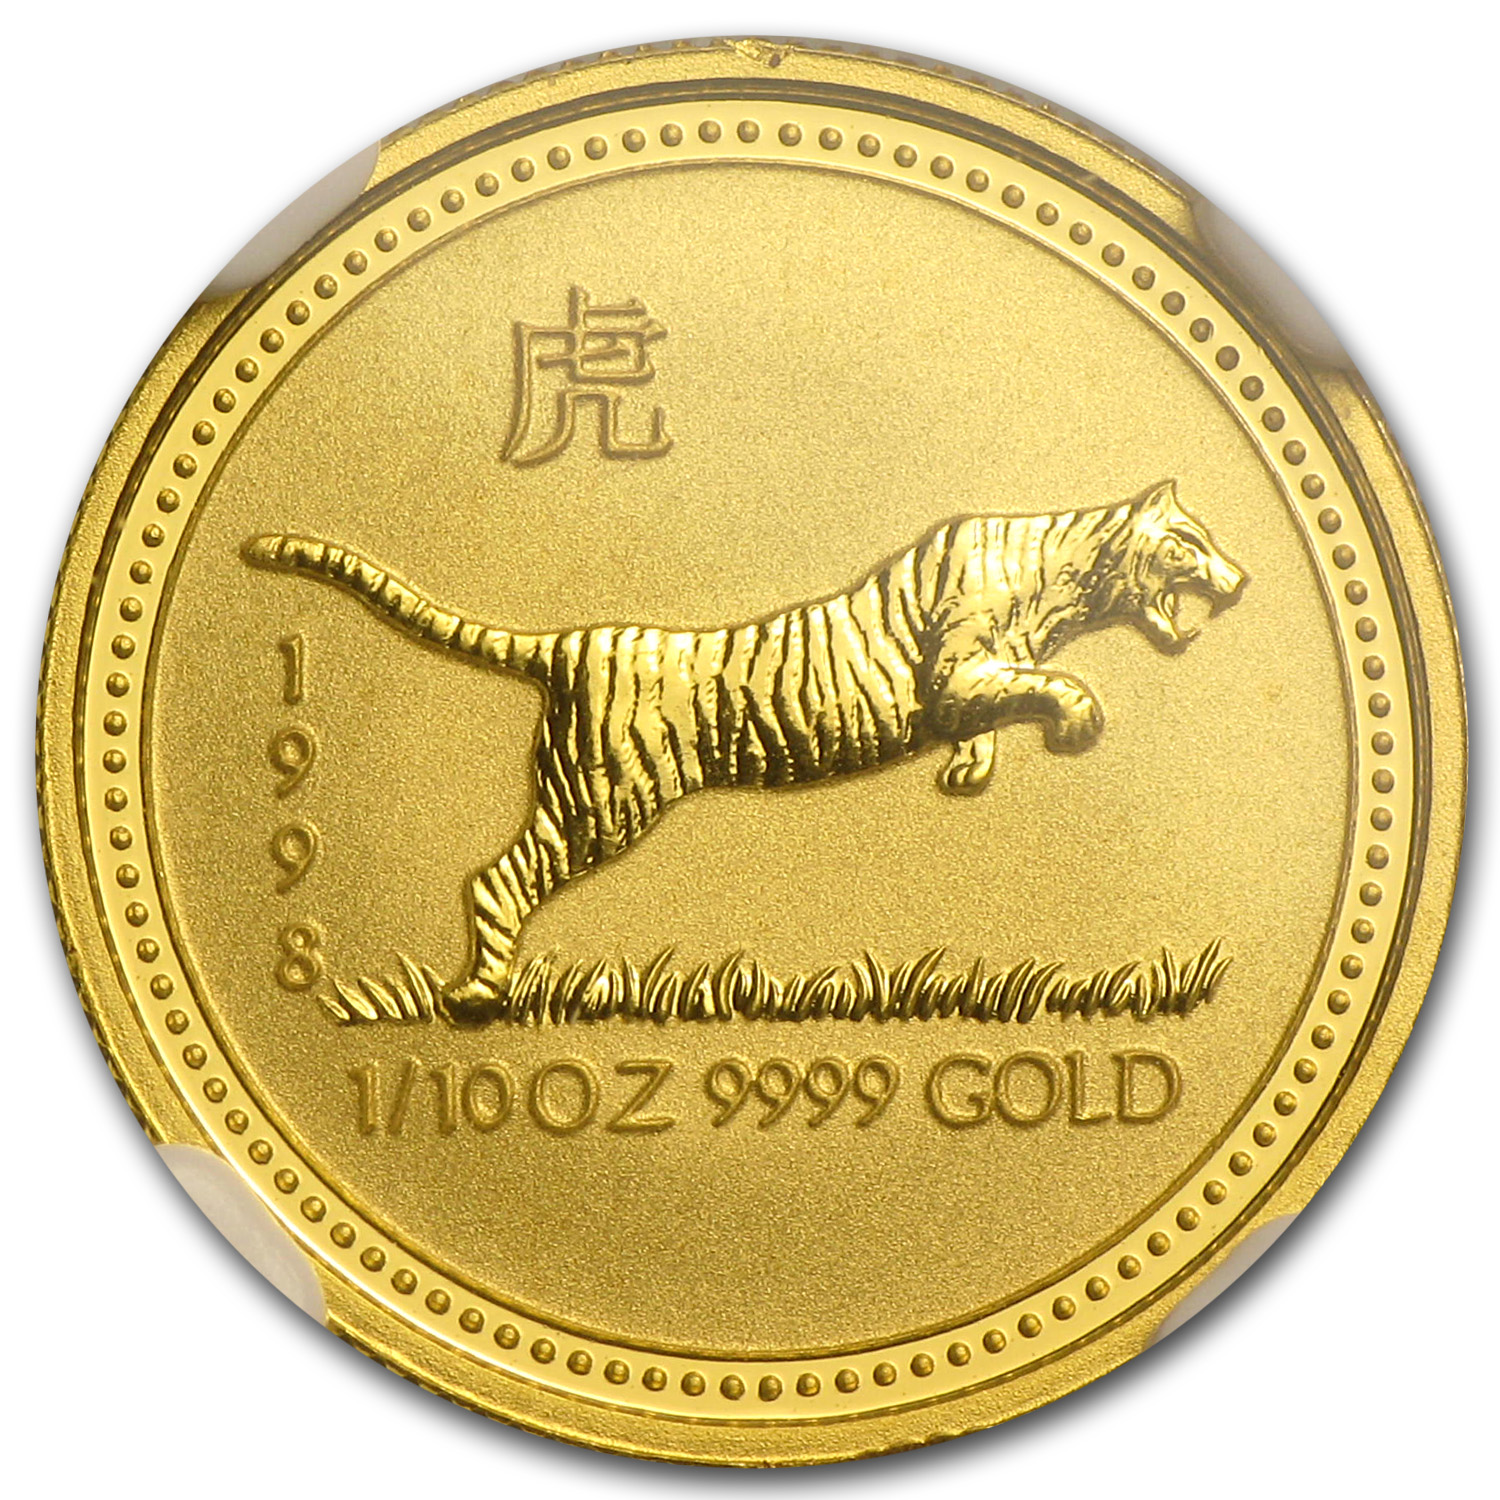 1998 1/10 oz Gold Year of the Tiger Lunar Coin (SI) MS-68 NGC